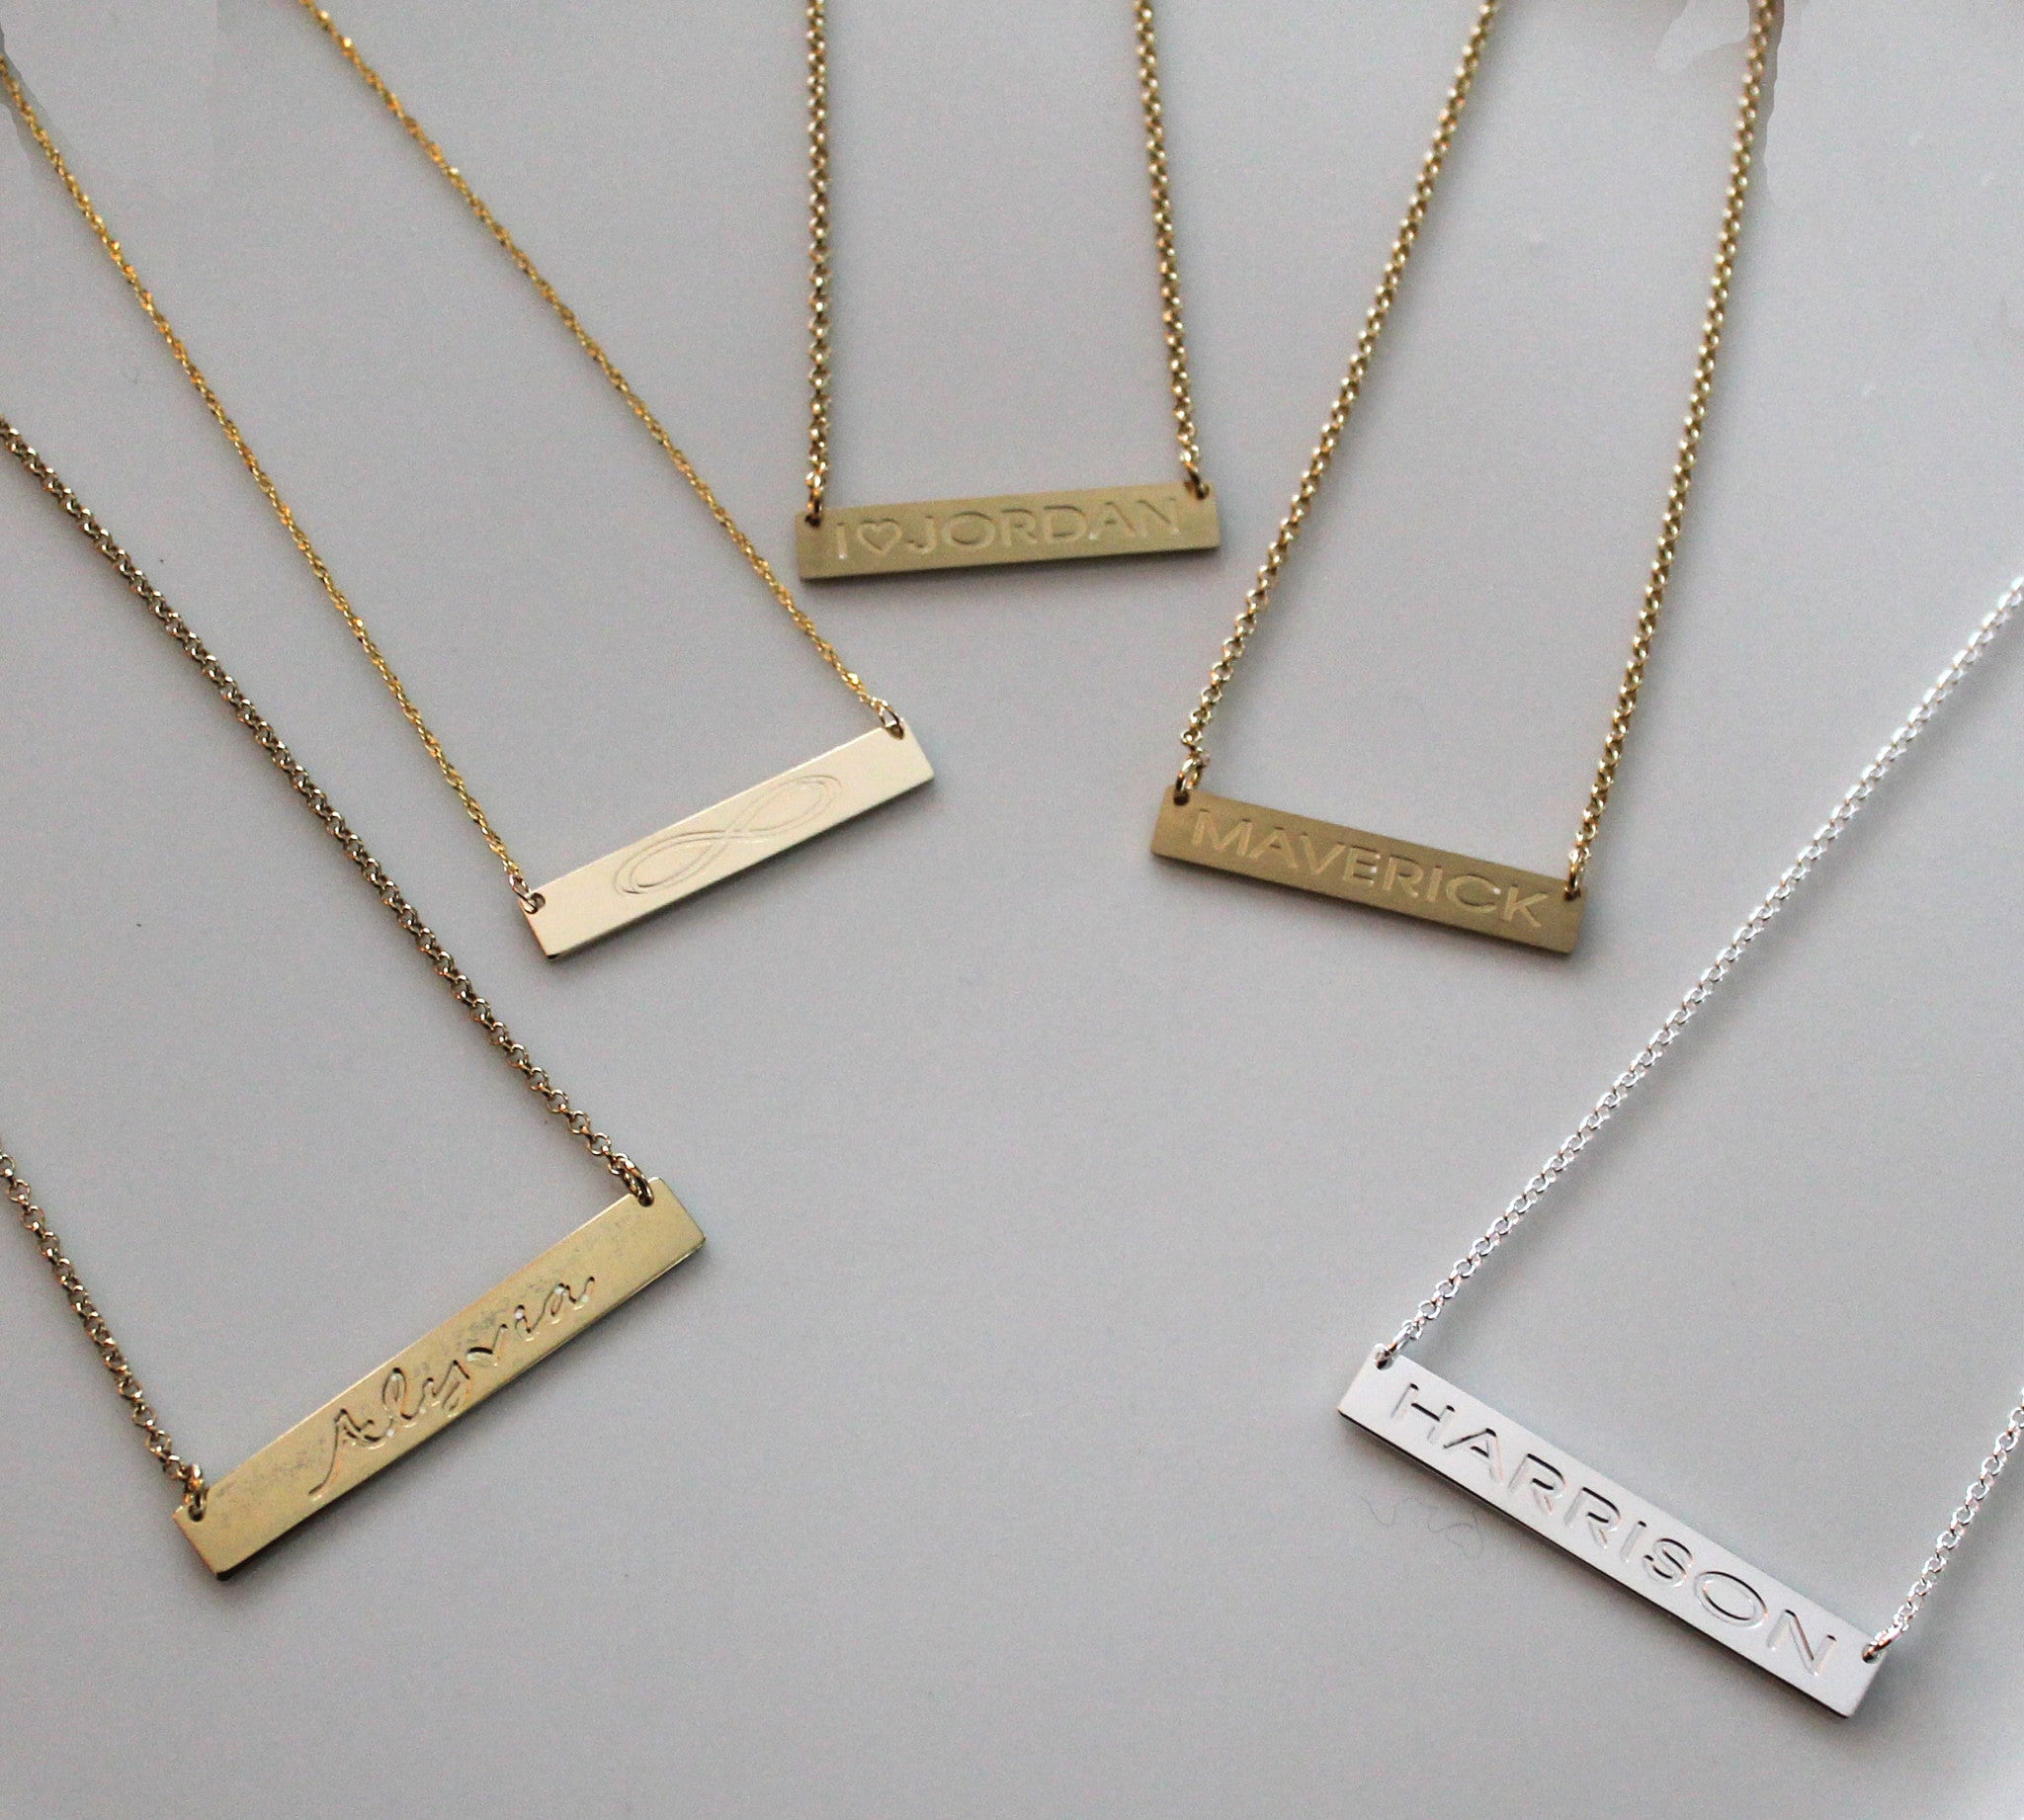 engraved gold bar necklace - kardashians - clare crawley - bachelor